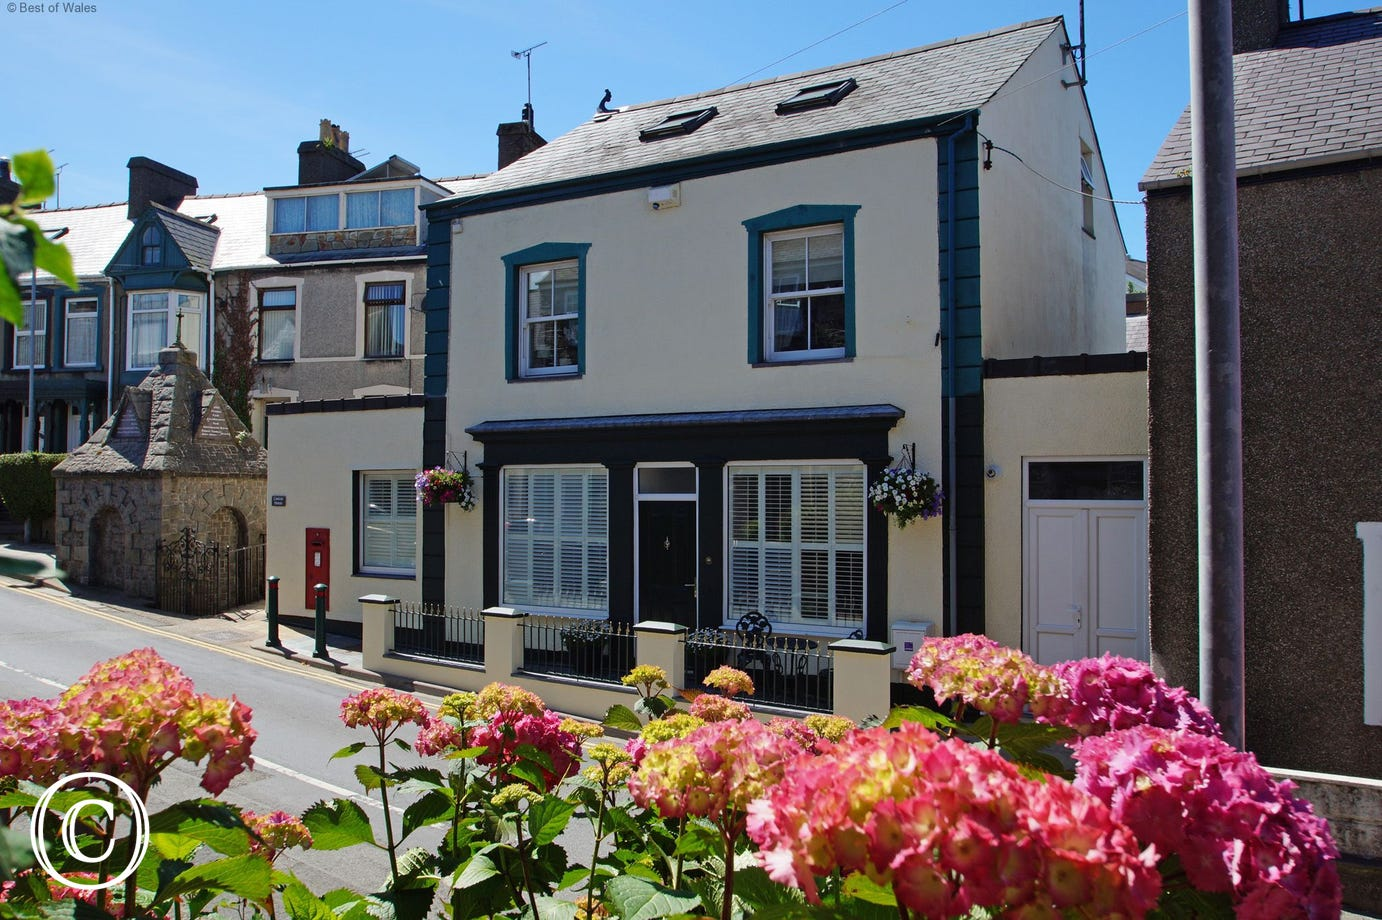 Previously a post office, this Nefyn accommodation enjoys a central location in the village.